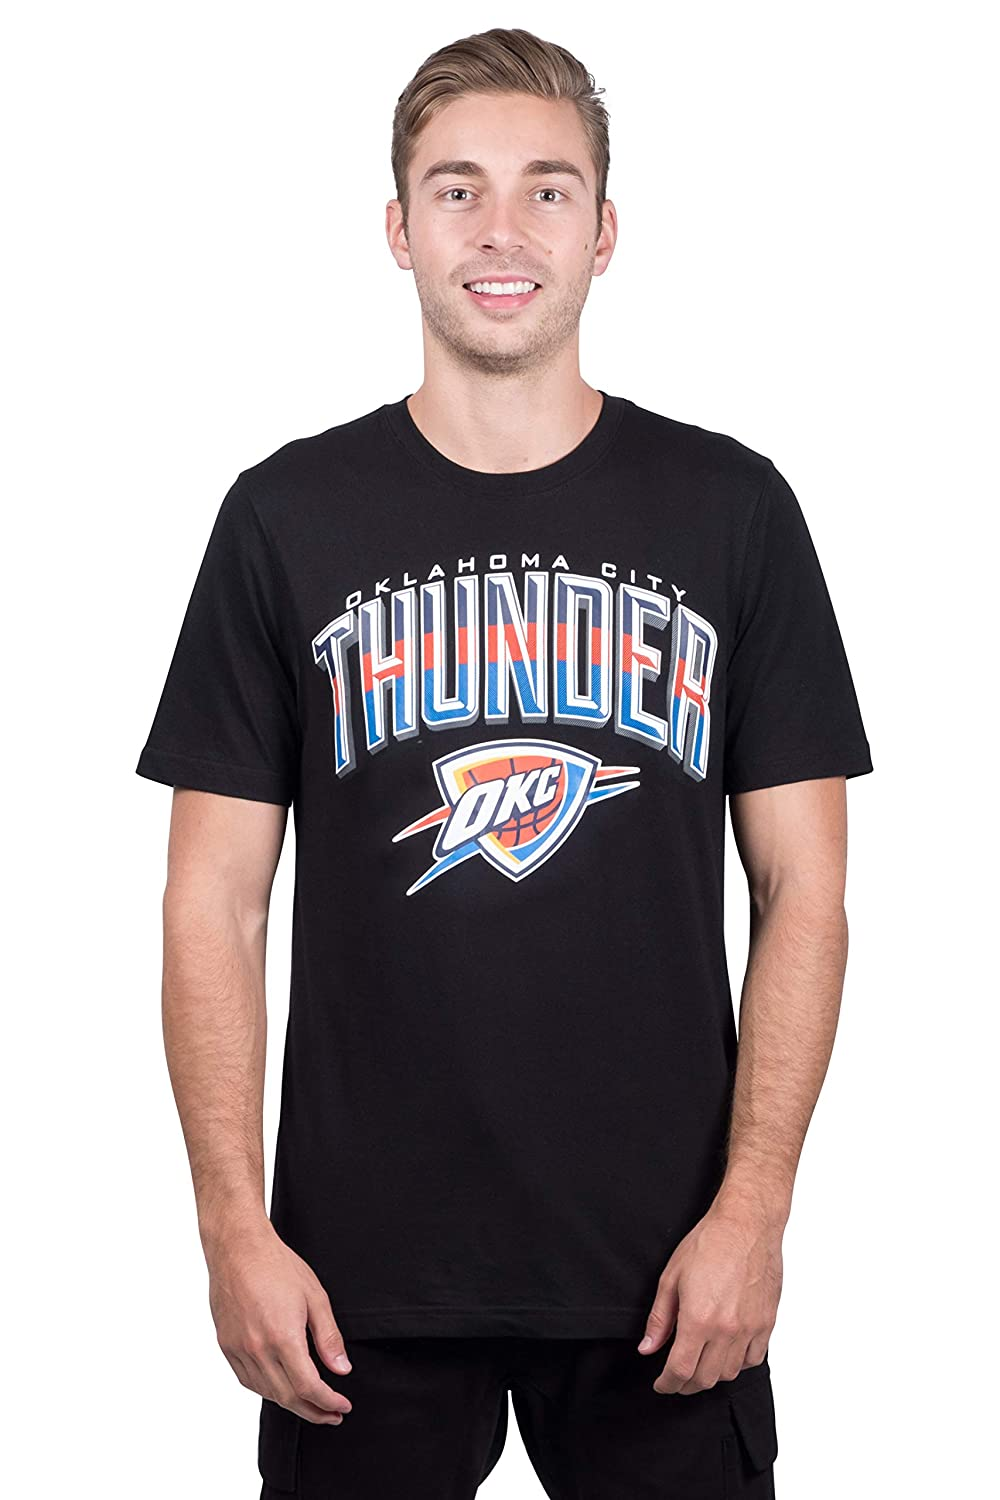 (Oklahoma City Thunder, XX-Large) - NBA Men's T-Shirt Arched Plexi Short Sleeve Tee Shirt, Team Logo Black   B01LZBS0DK